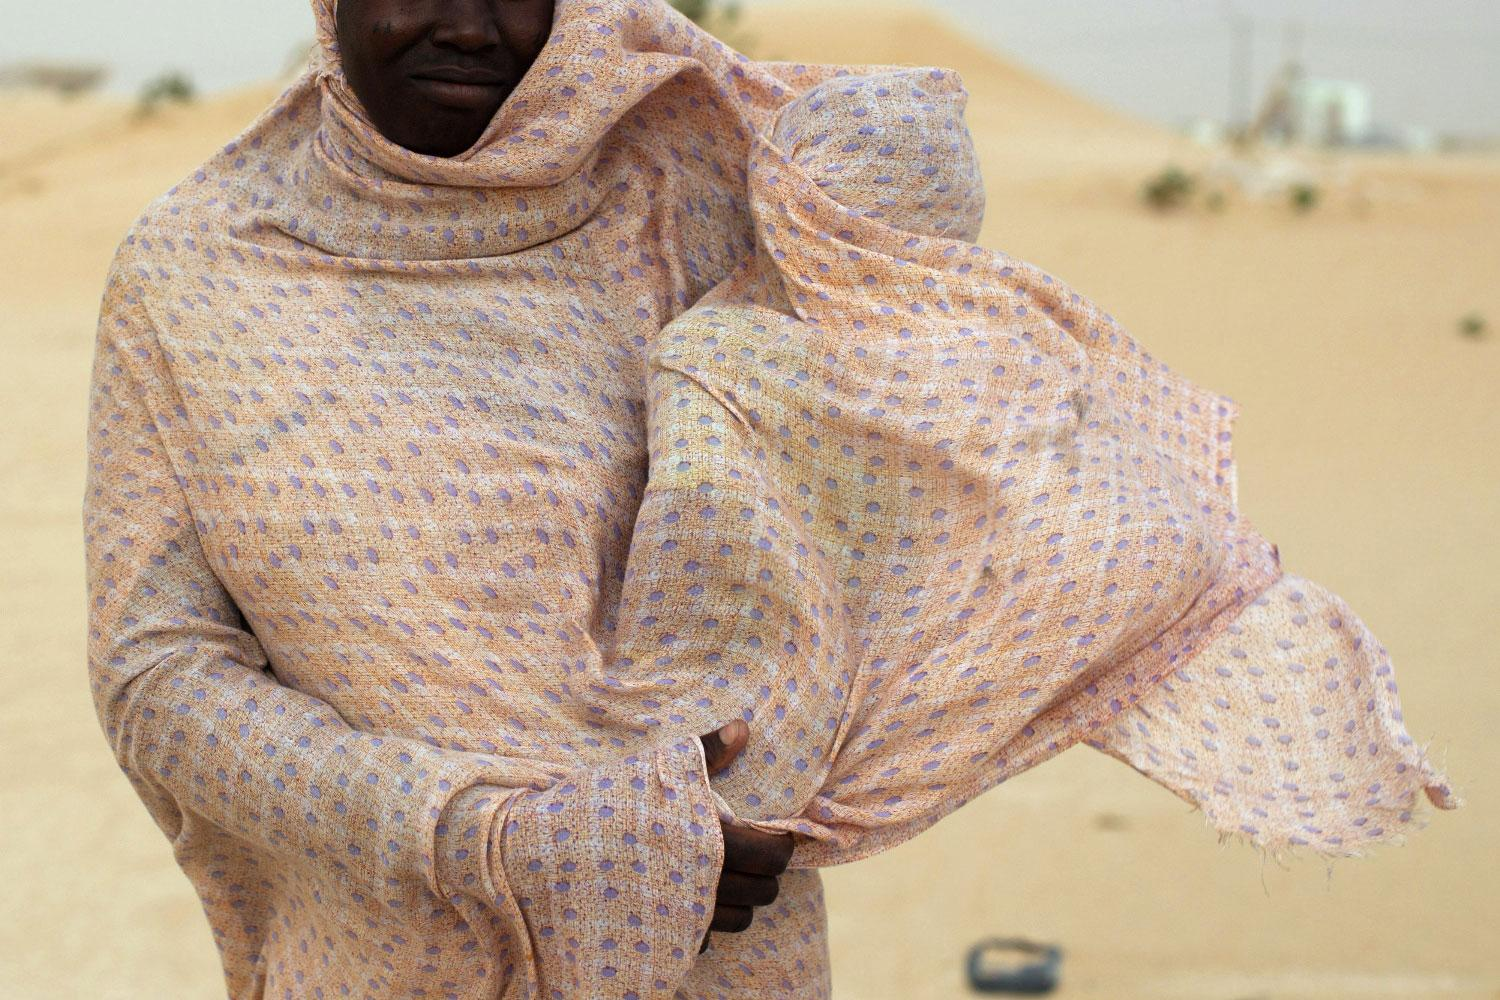 A woman shields her child from the wind while walking on sand dunes near Nouakchott, Mauritania.